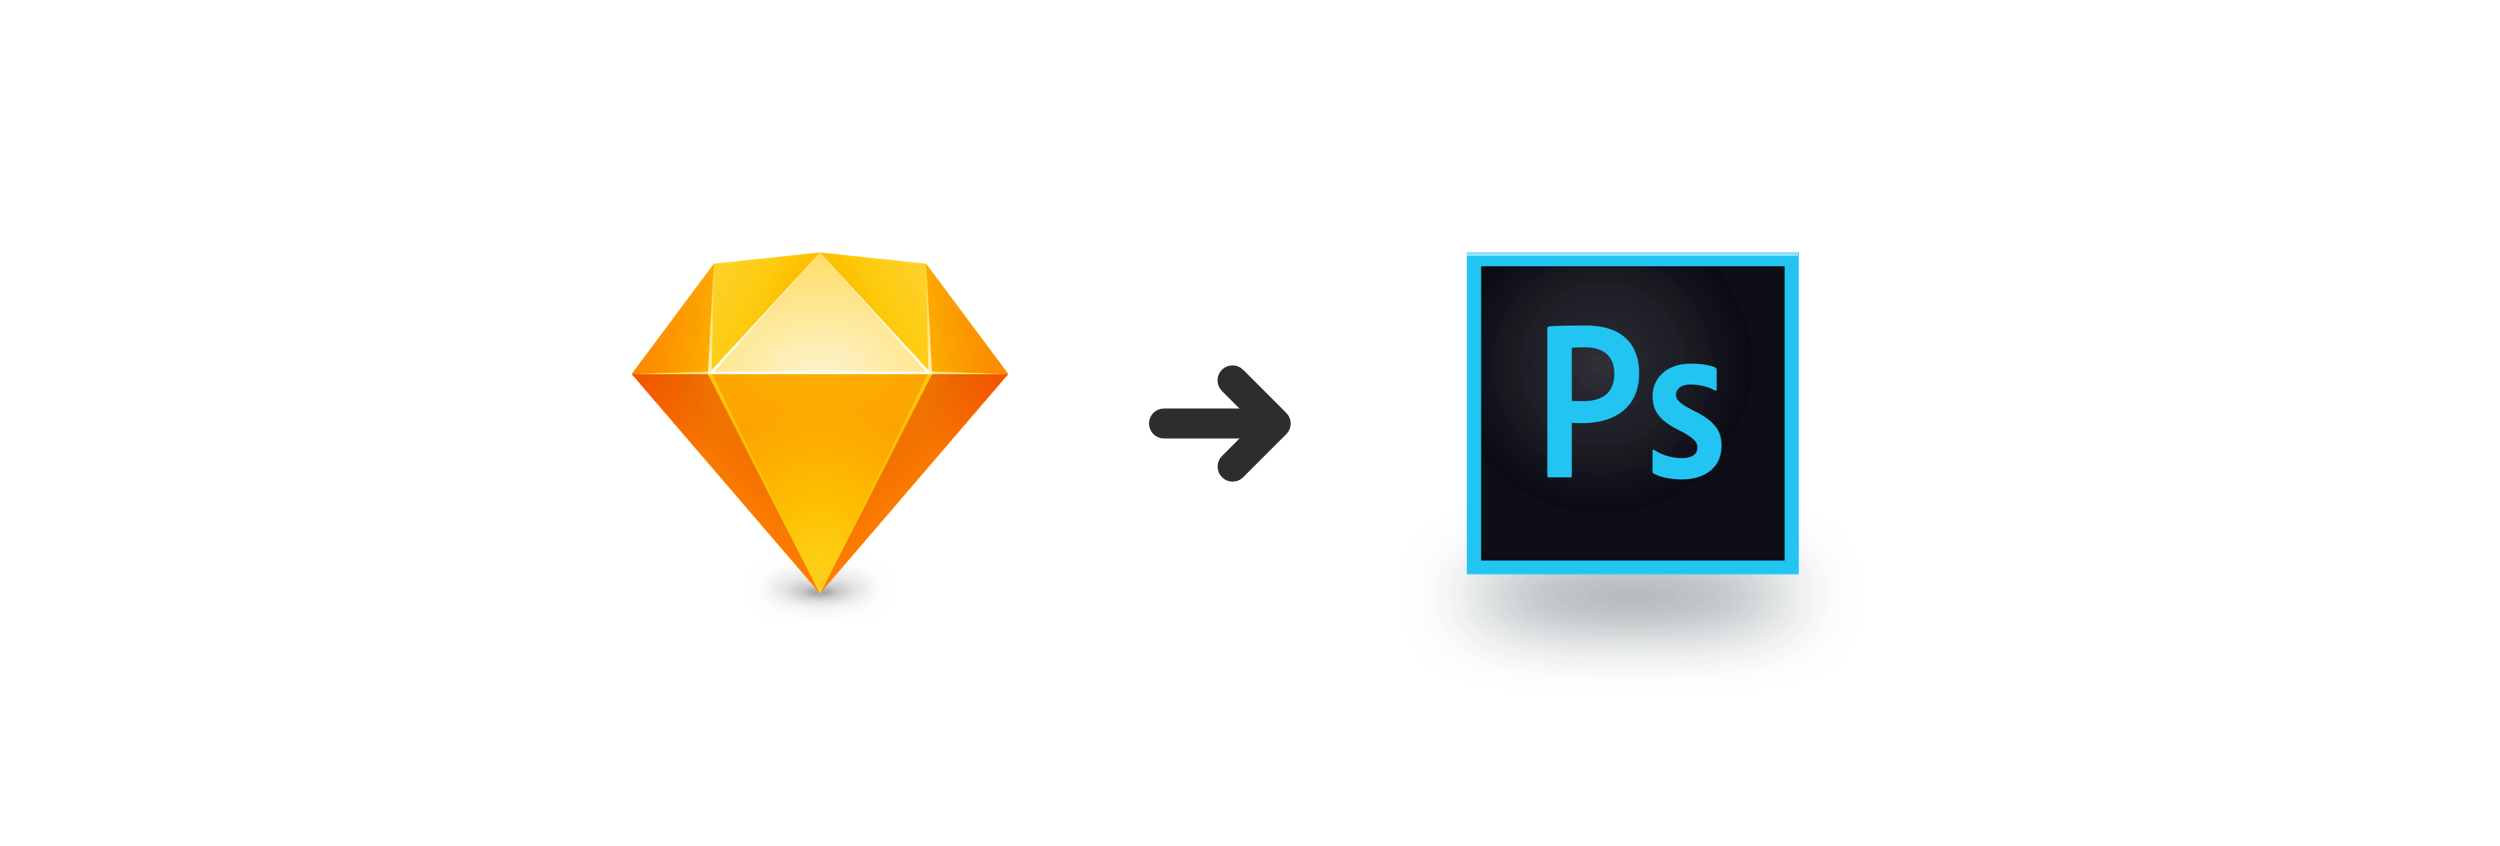 How To Properly Export Your Sketch Designs To Photoshop If You Really Have To By Zoe Lacroix Movify Medium